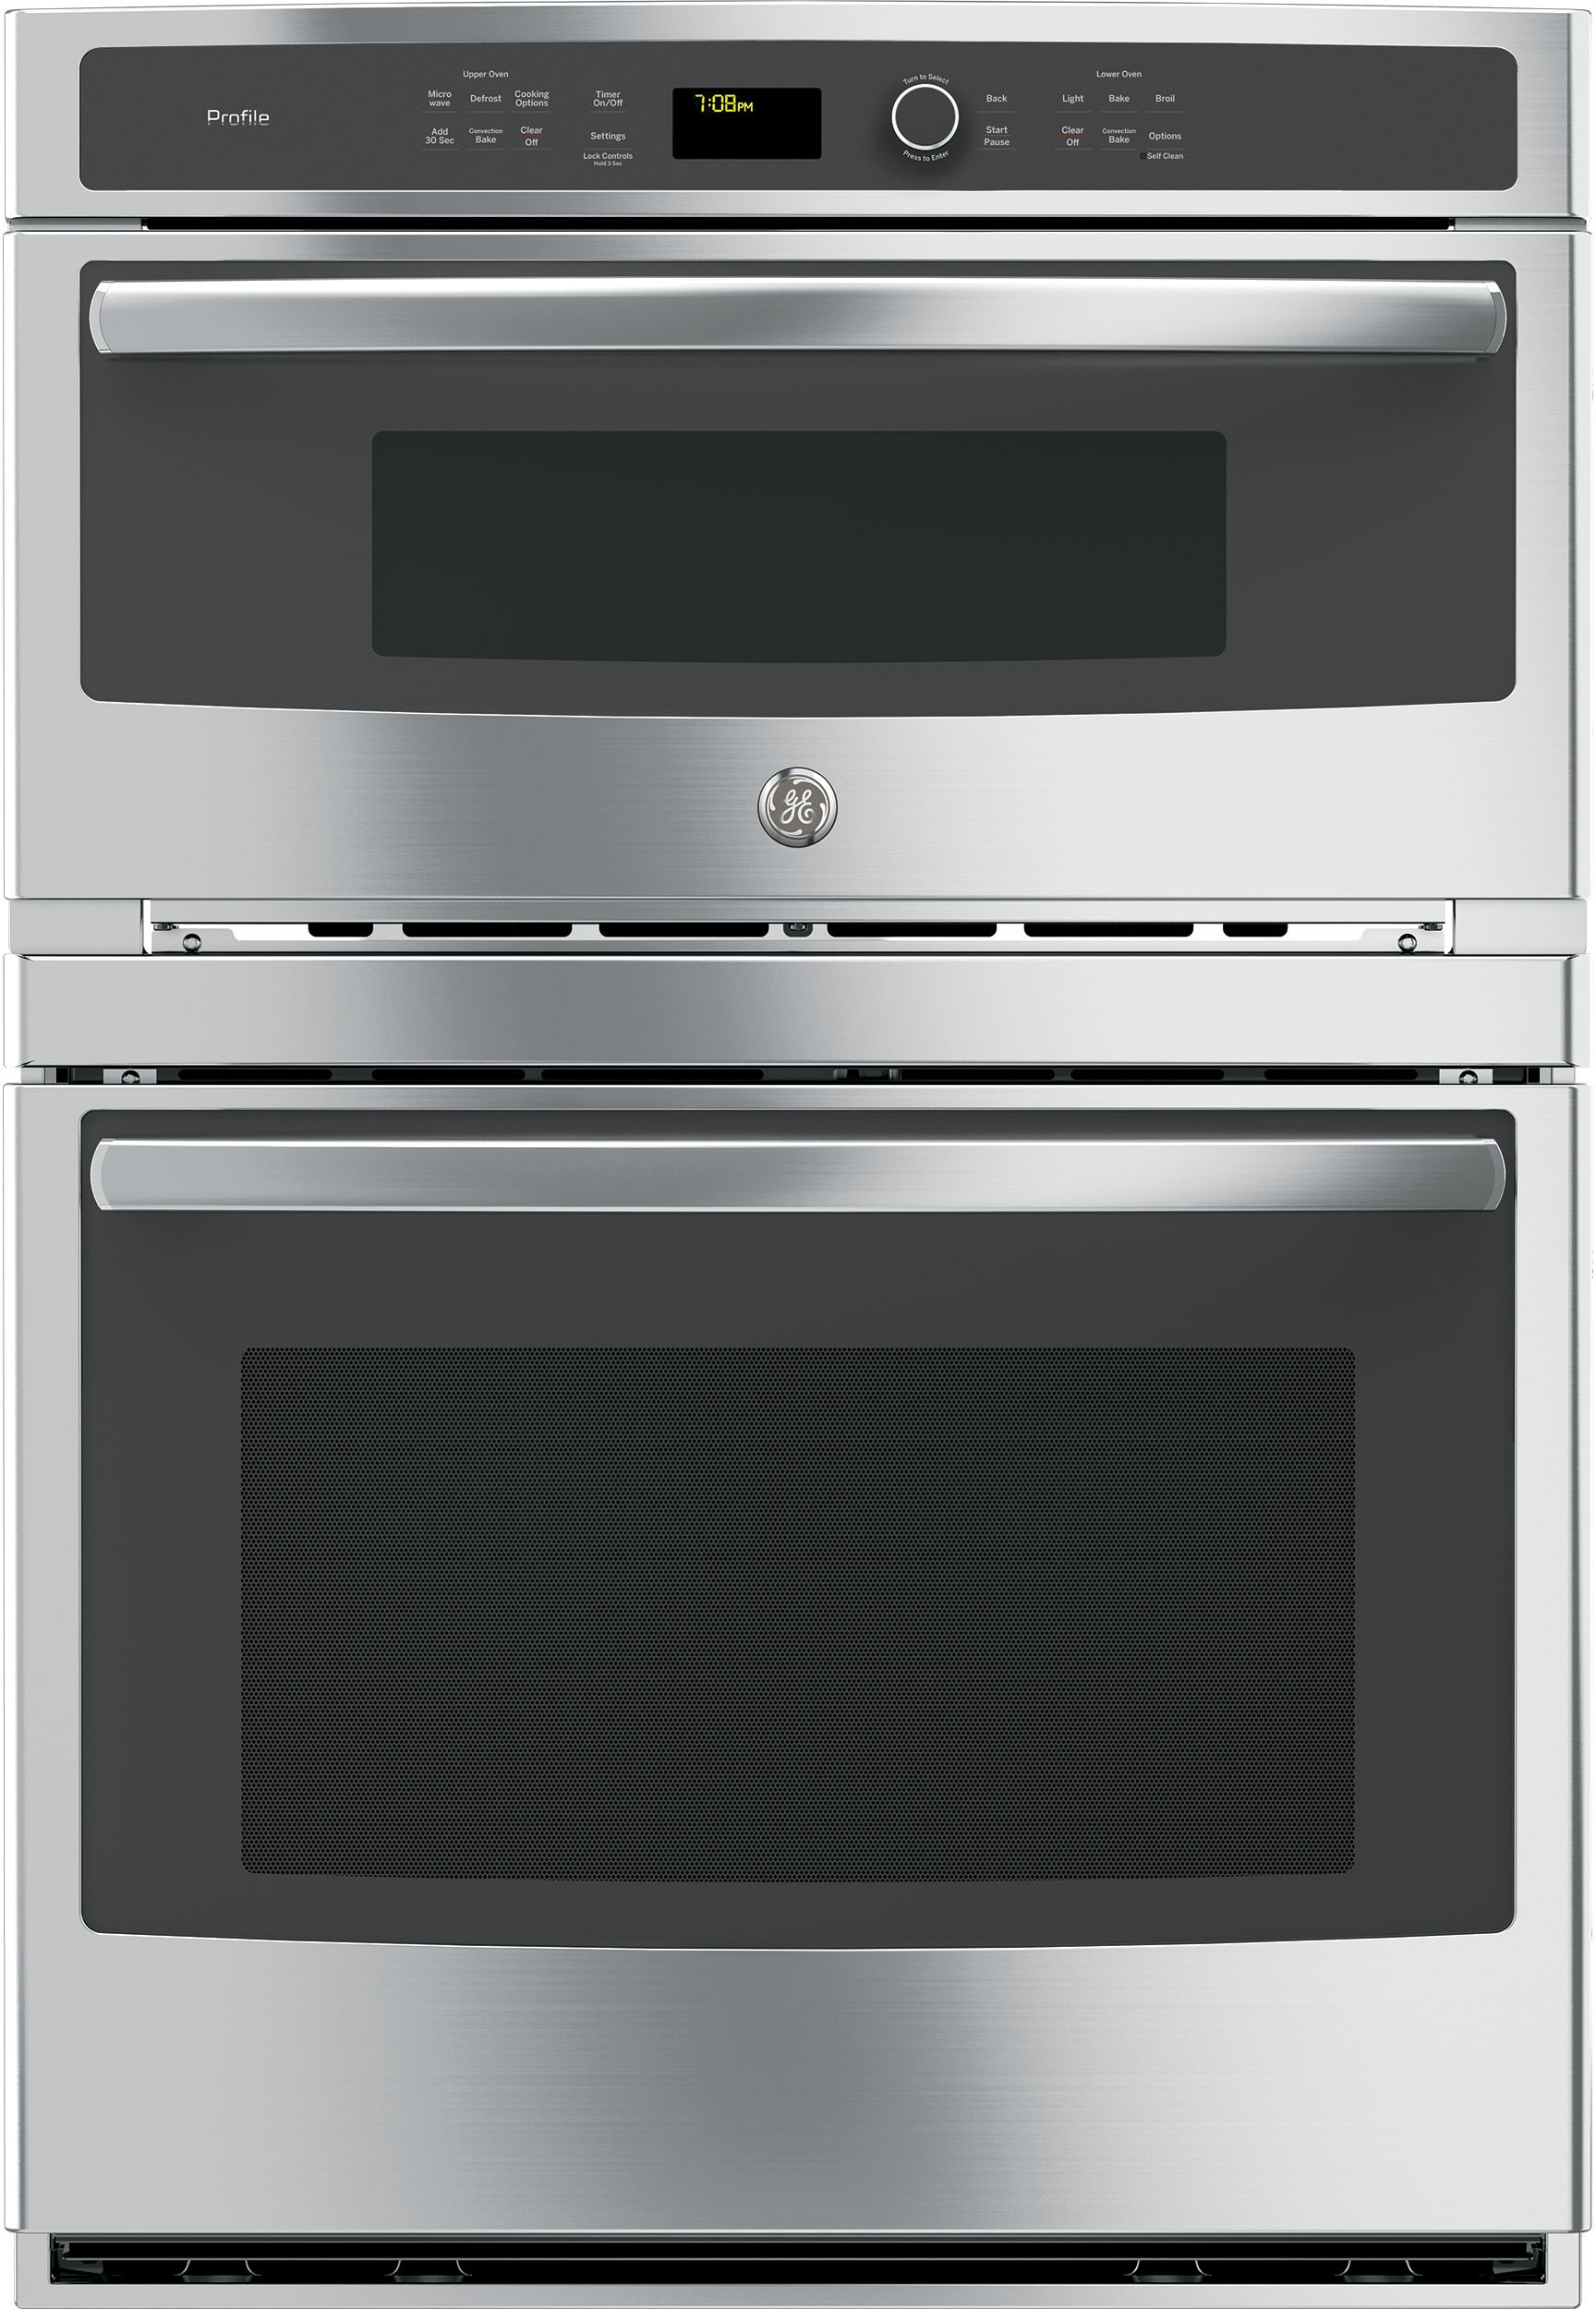 GE Profile Wall oven in Stainless Steel color showcased by Corbeil Electro Store